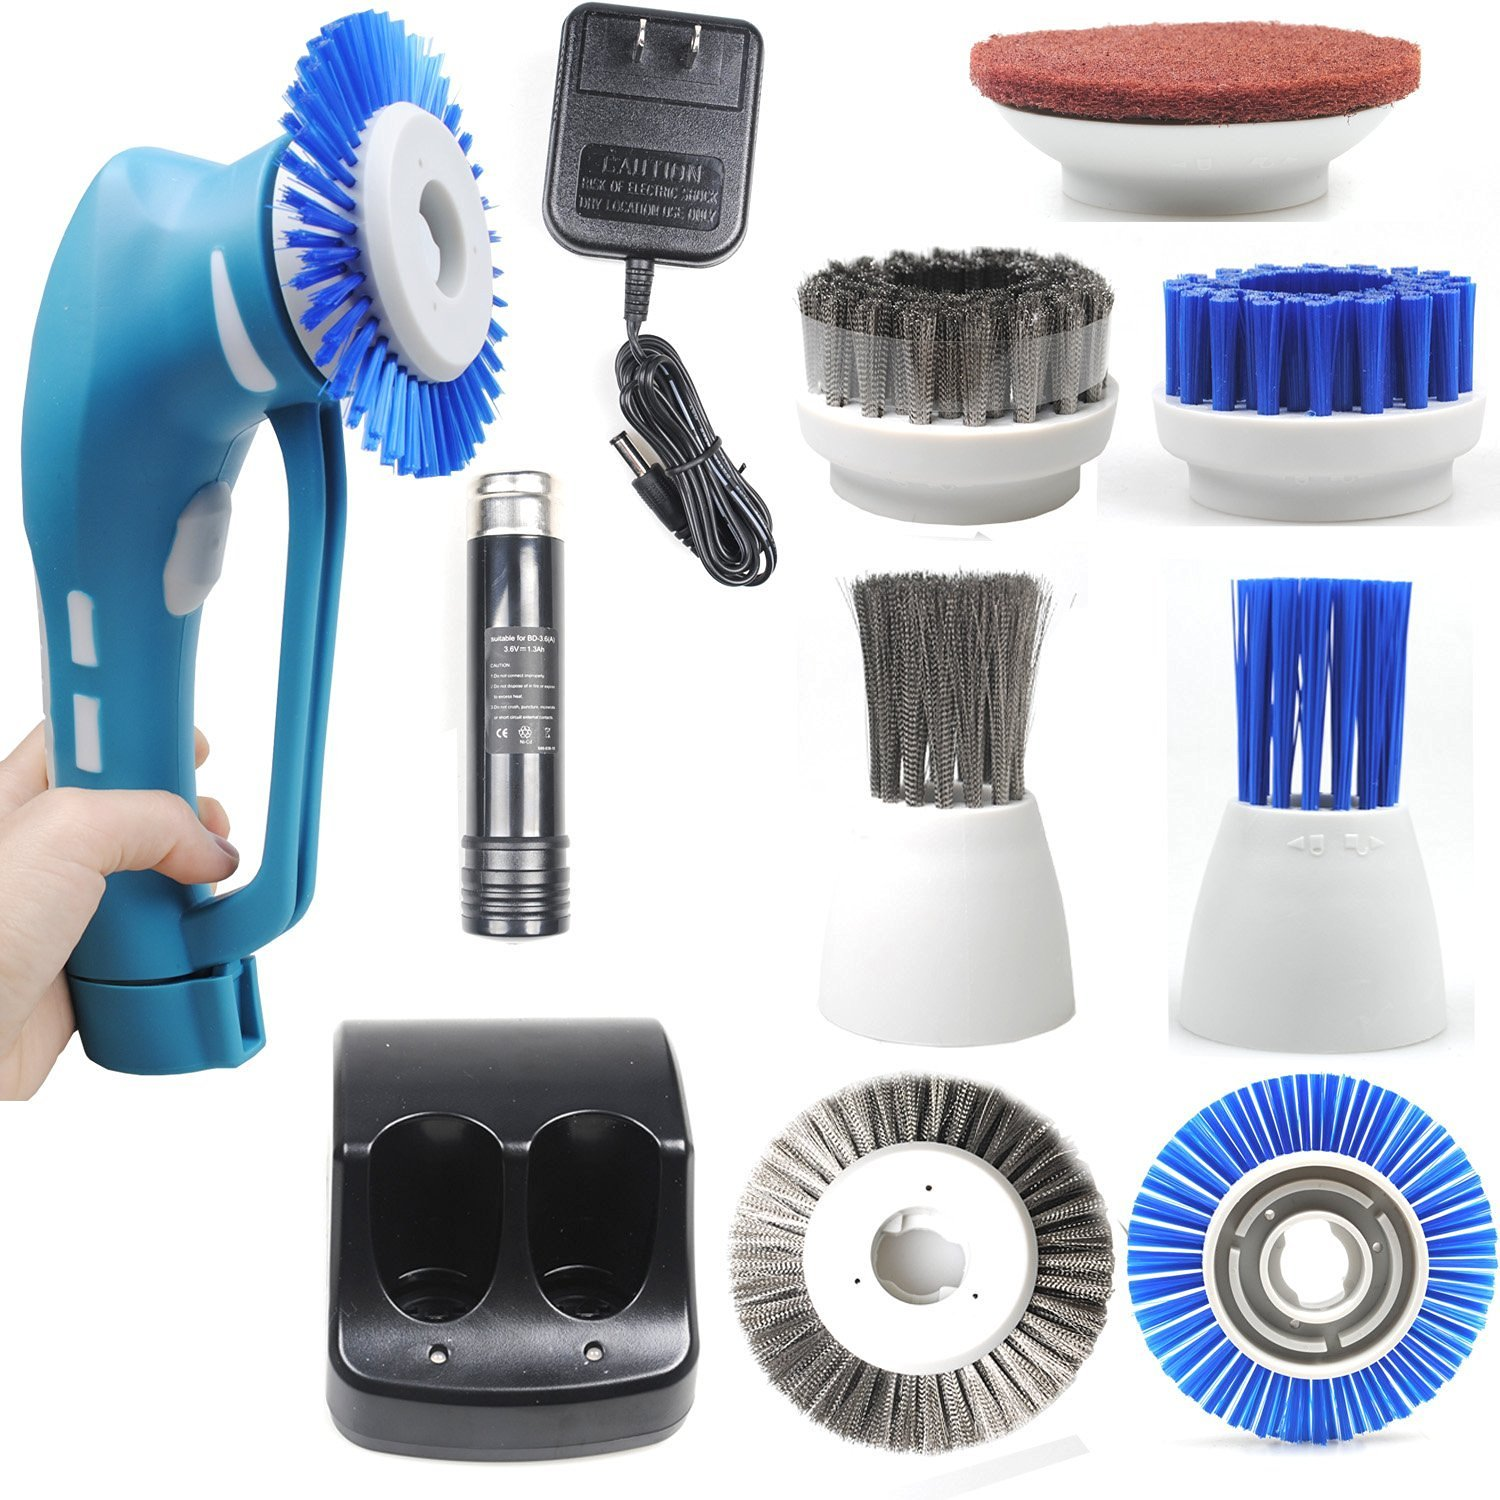 CUH Cordless Power Scrubber with Rechargeable Battery for Bathroom Kitchen 6 Brushes 1 Scouring Pad